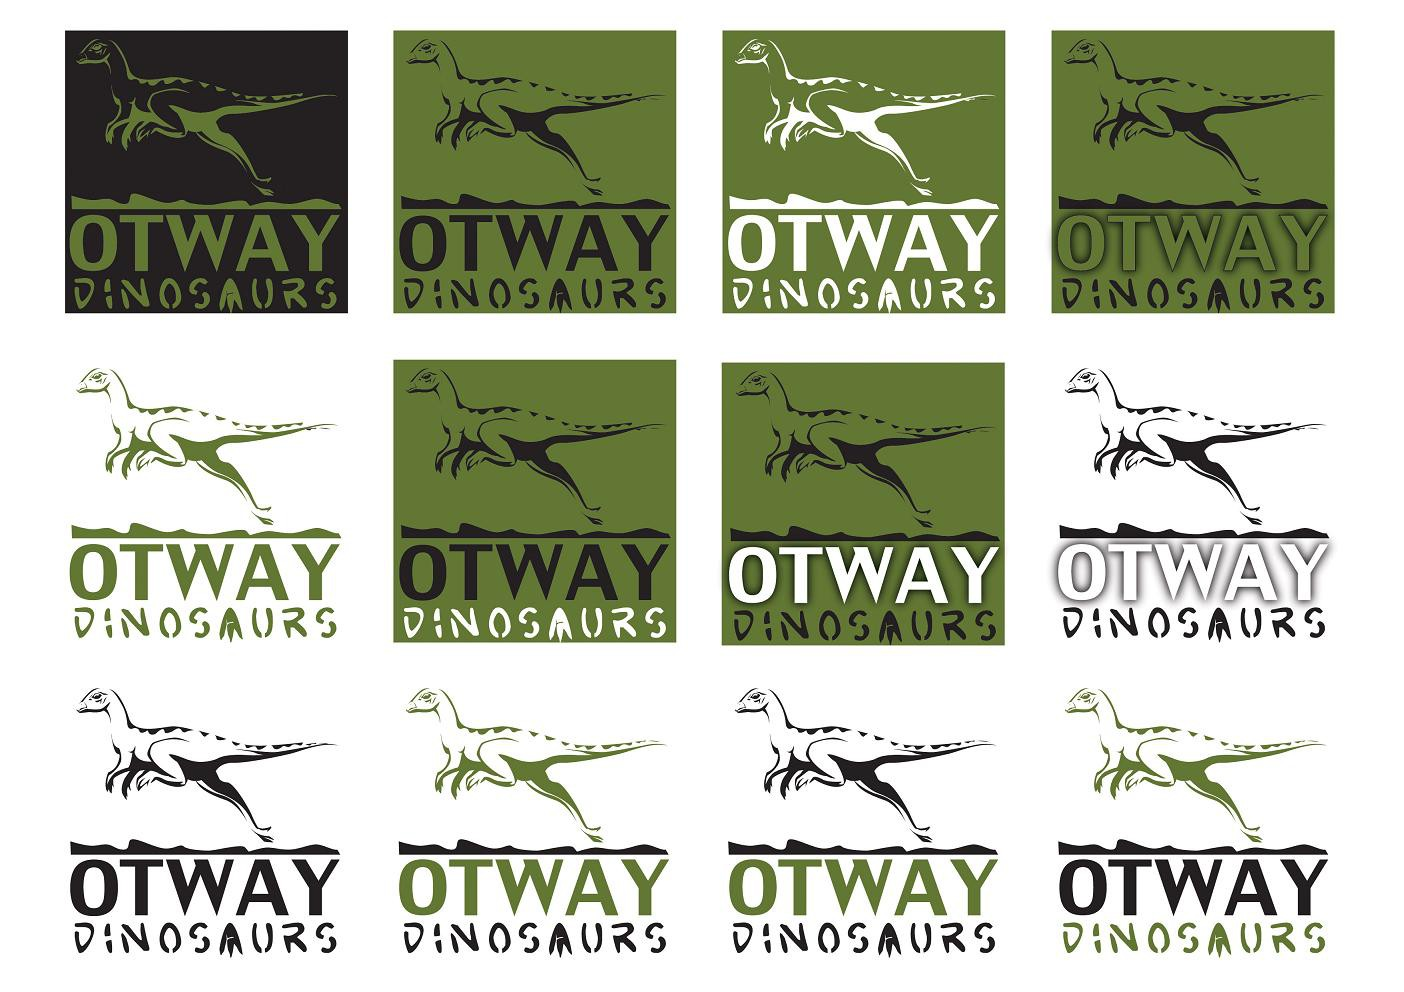 Help Otway Dinosaurs with a new logo